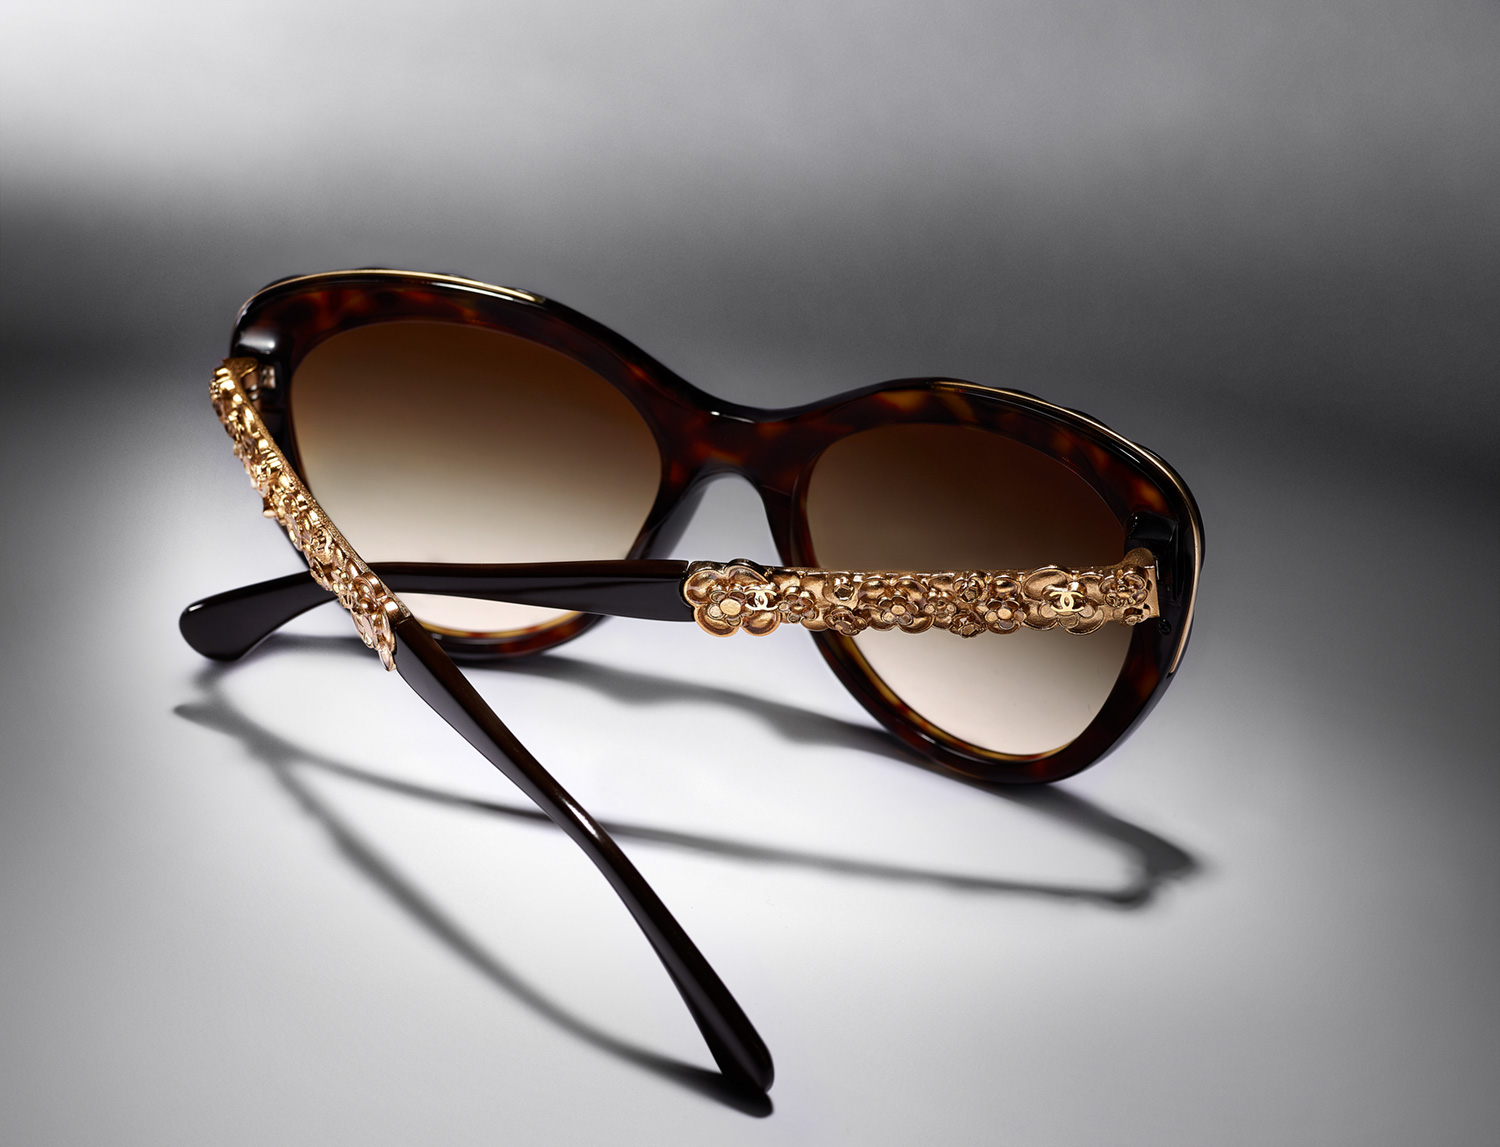 Chanel Bijou 2016 Eyewear Collection